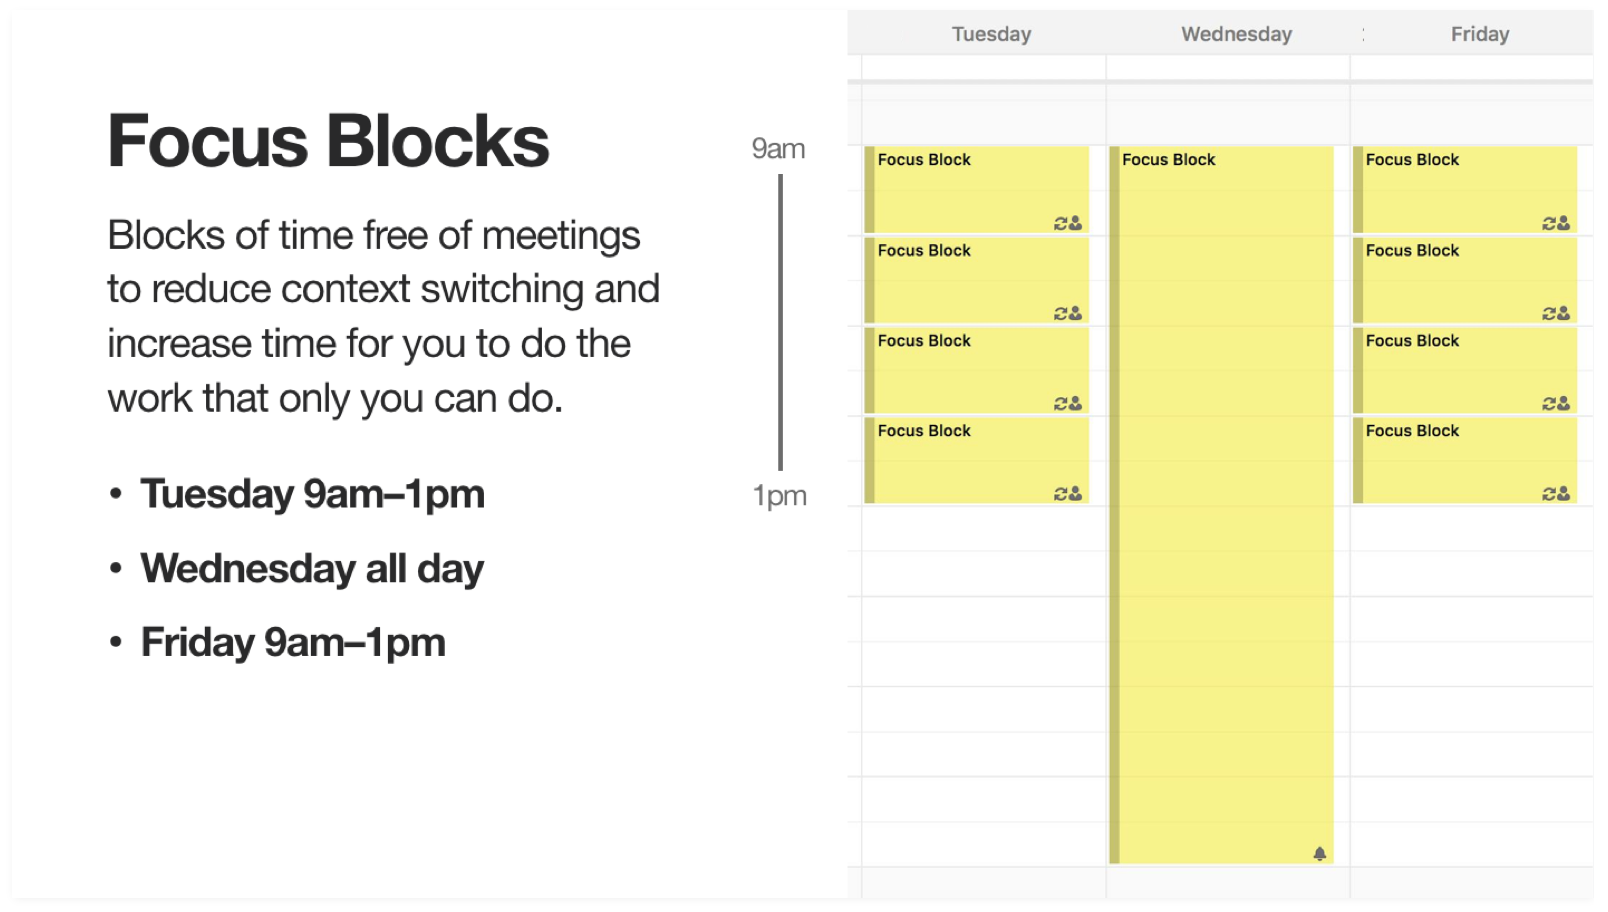 Screenshot showing calendar focus blocks on Tuesdays and Fridays 9am-1pm and Wednesdays all day